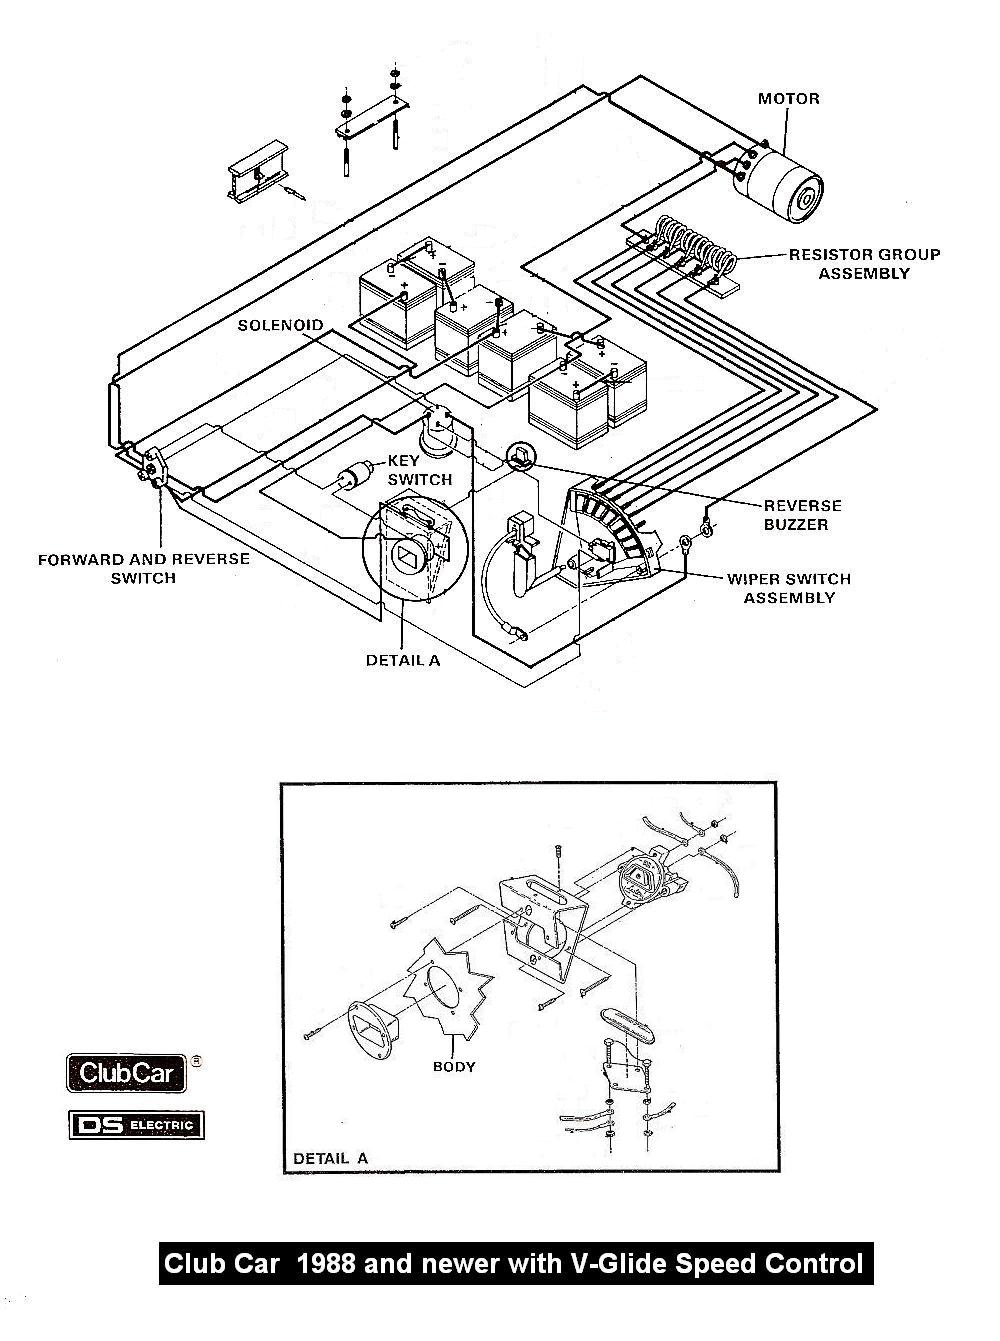 1992 Ez Go Parts Diagram Wiring Schematics. 1992 Ezgo Gas Golf Cart Wiring Diagram Library Ez Go Xi 875 Steering Parts. Wiring. Electric Golf Cart 36 Volt Ez Go St350 Wiring Diagram For At Scoala.co